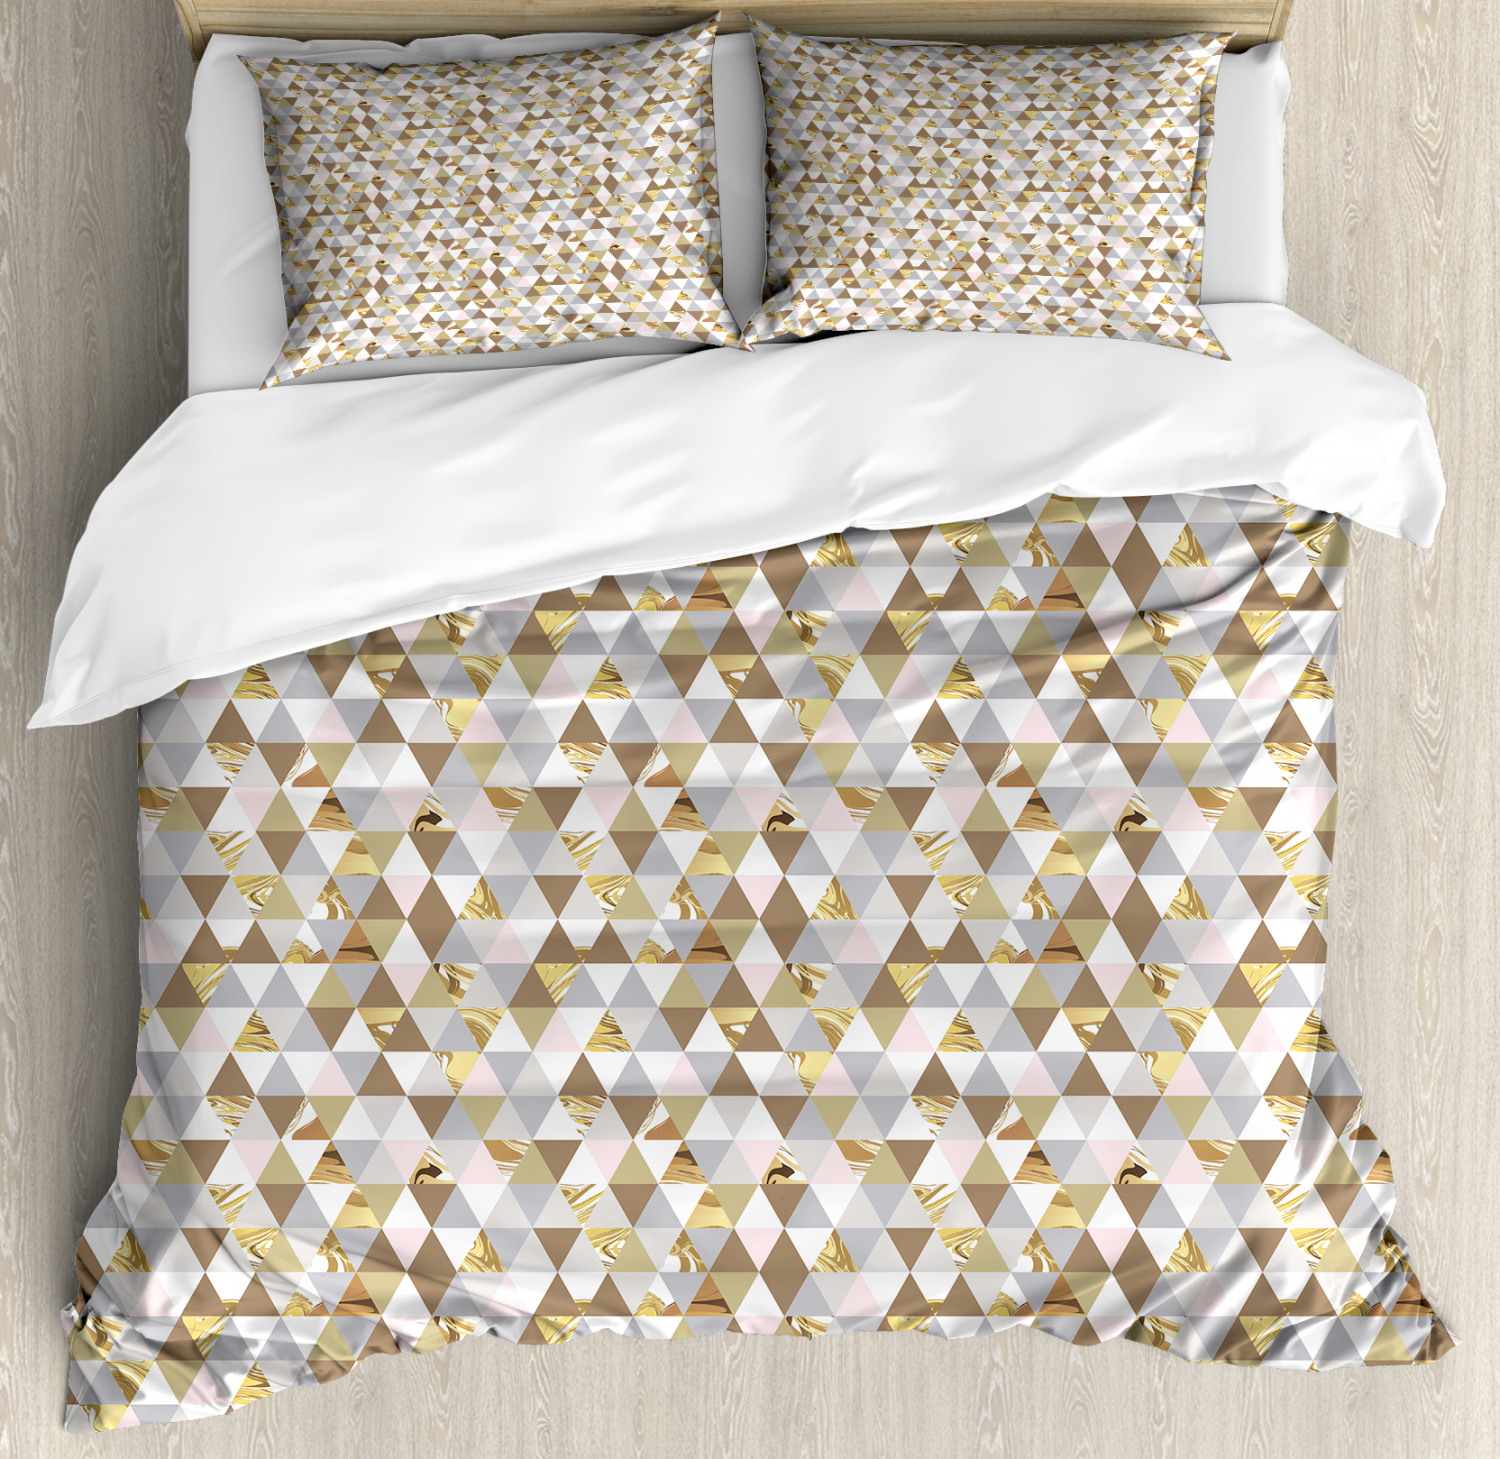 Geometric Duvet Cover Set with Pillow Shams Marble Triangles Print